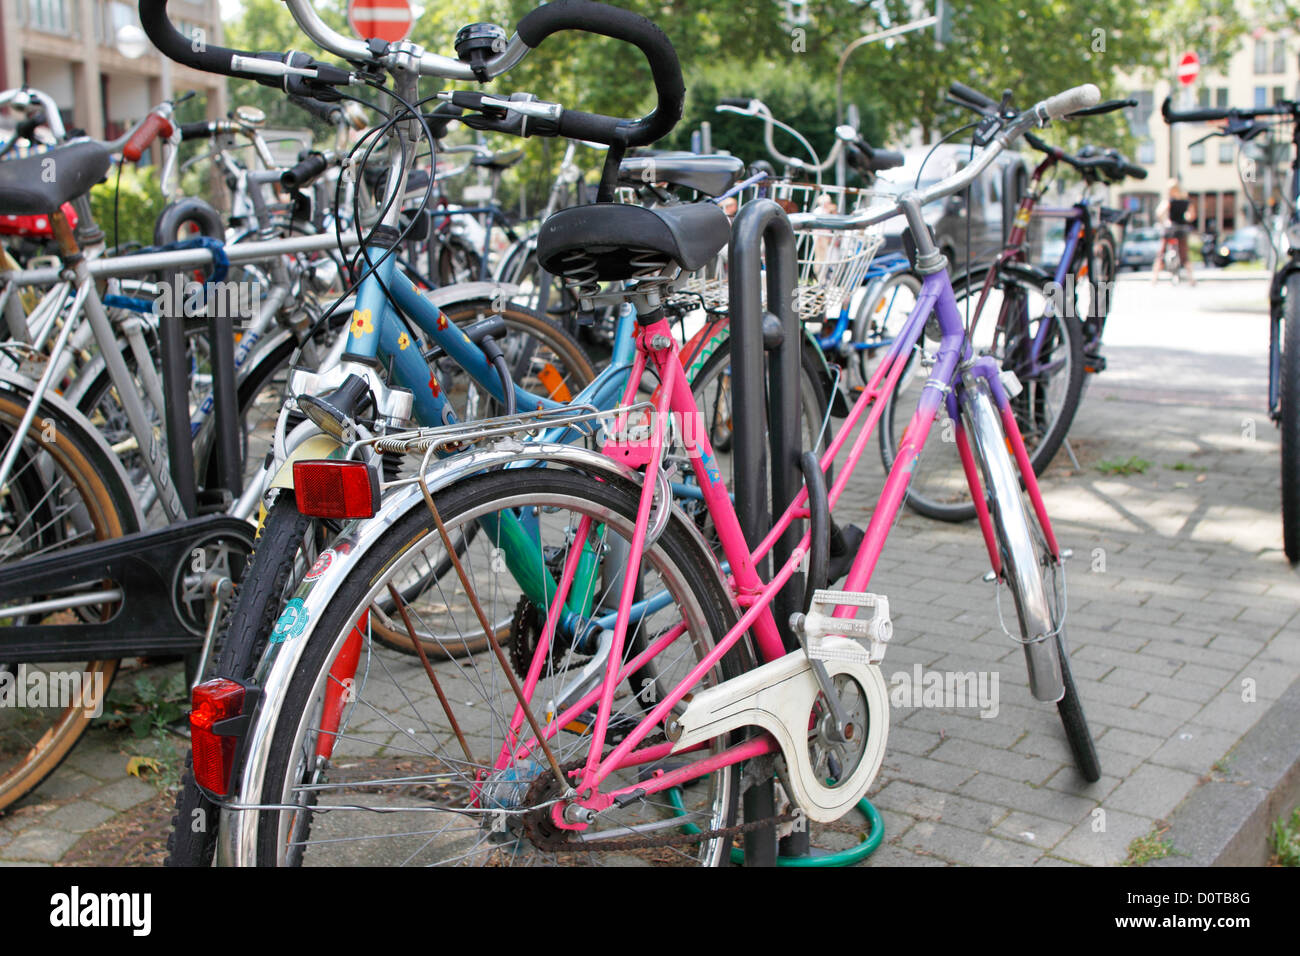 bicycles, bikes, traffic, park possibility, park, possibilities, bicycle stands, bicycle stands, traffic flood, - Stock Image